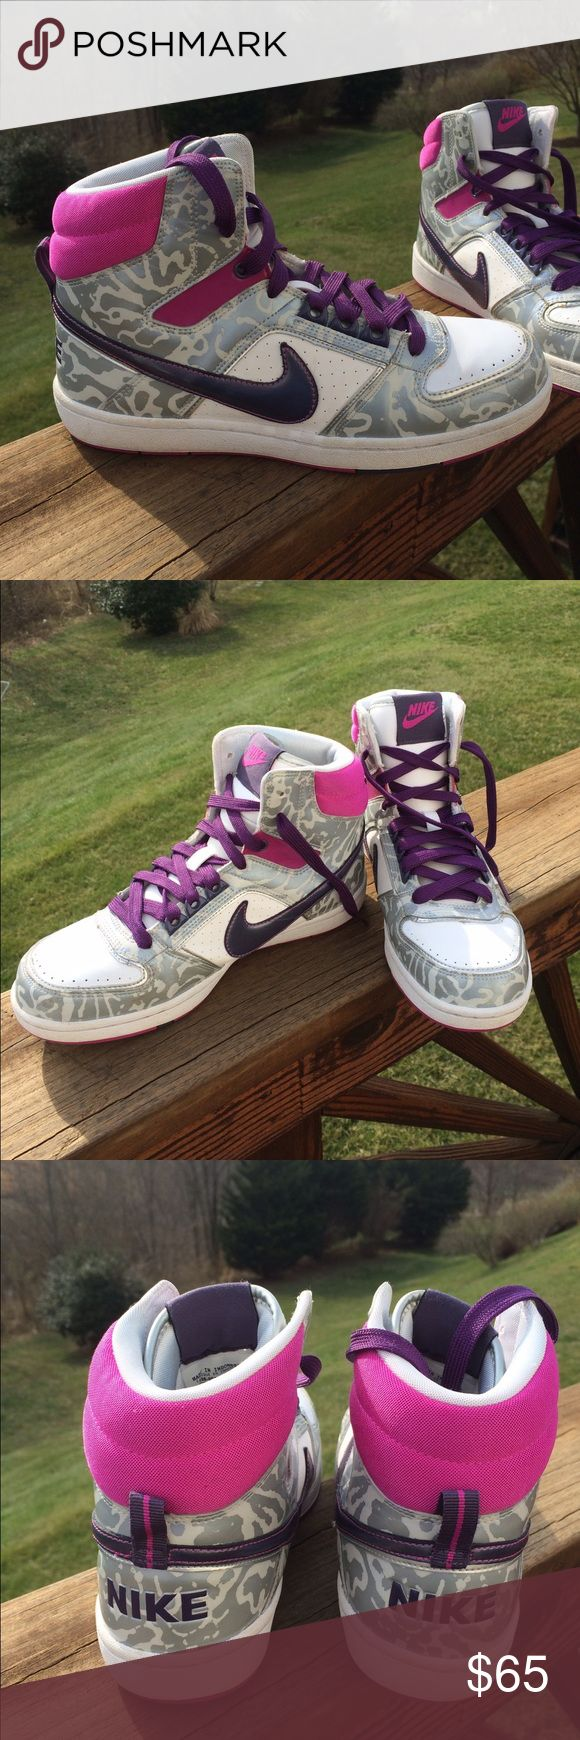 Nike silver cheetah print, pink & purple sneakers Nike silver cheetah print, pink & purple sneakers. Worn once! Size 8.5 Nike Shoes Sneakers